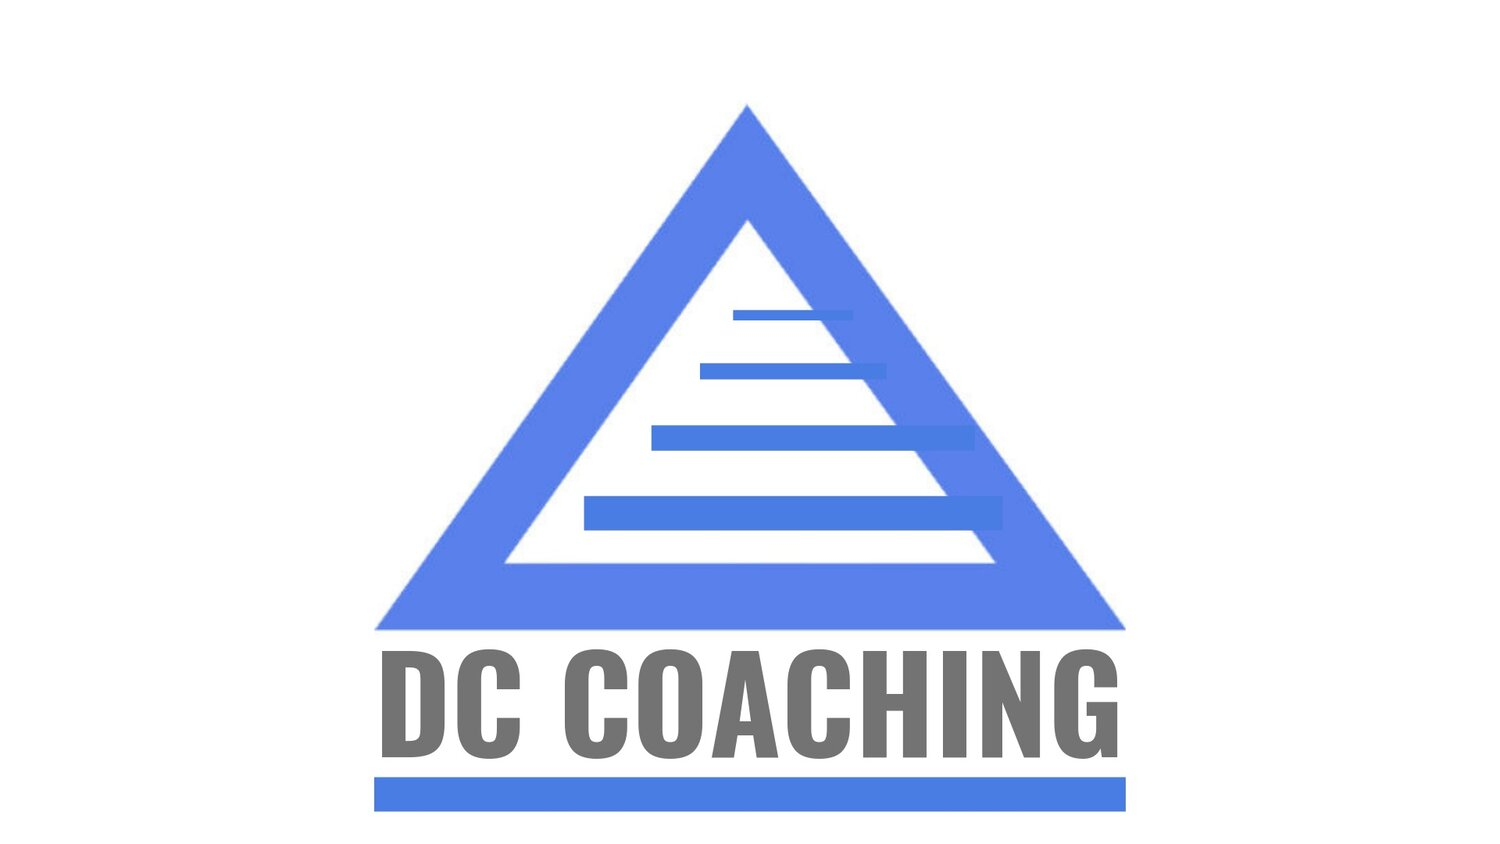 DC Coaching